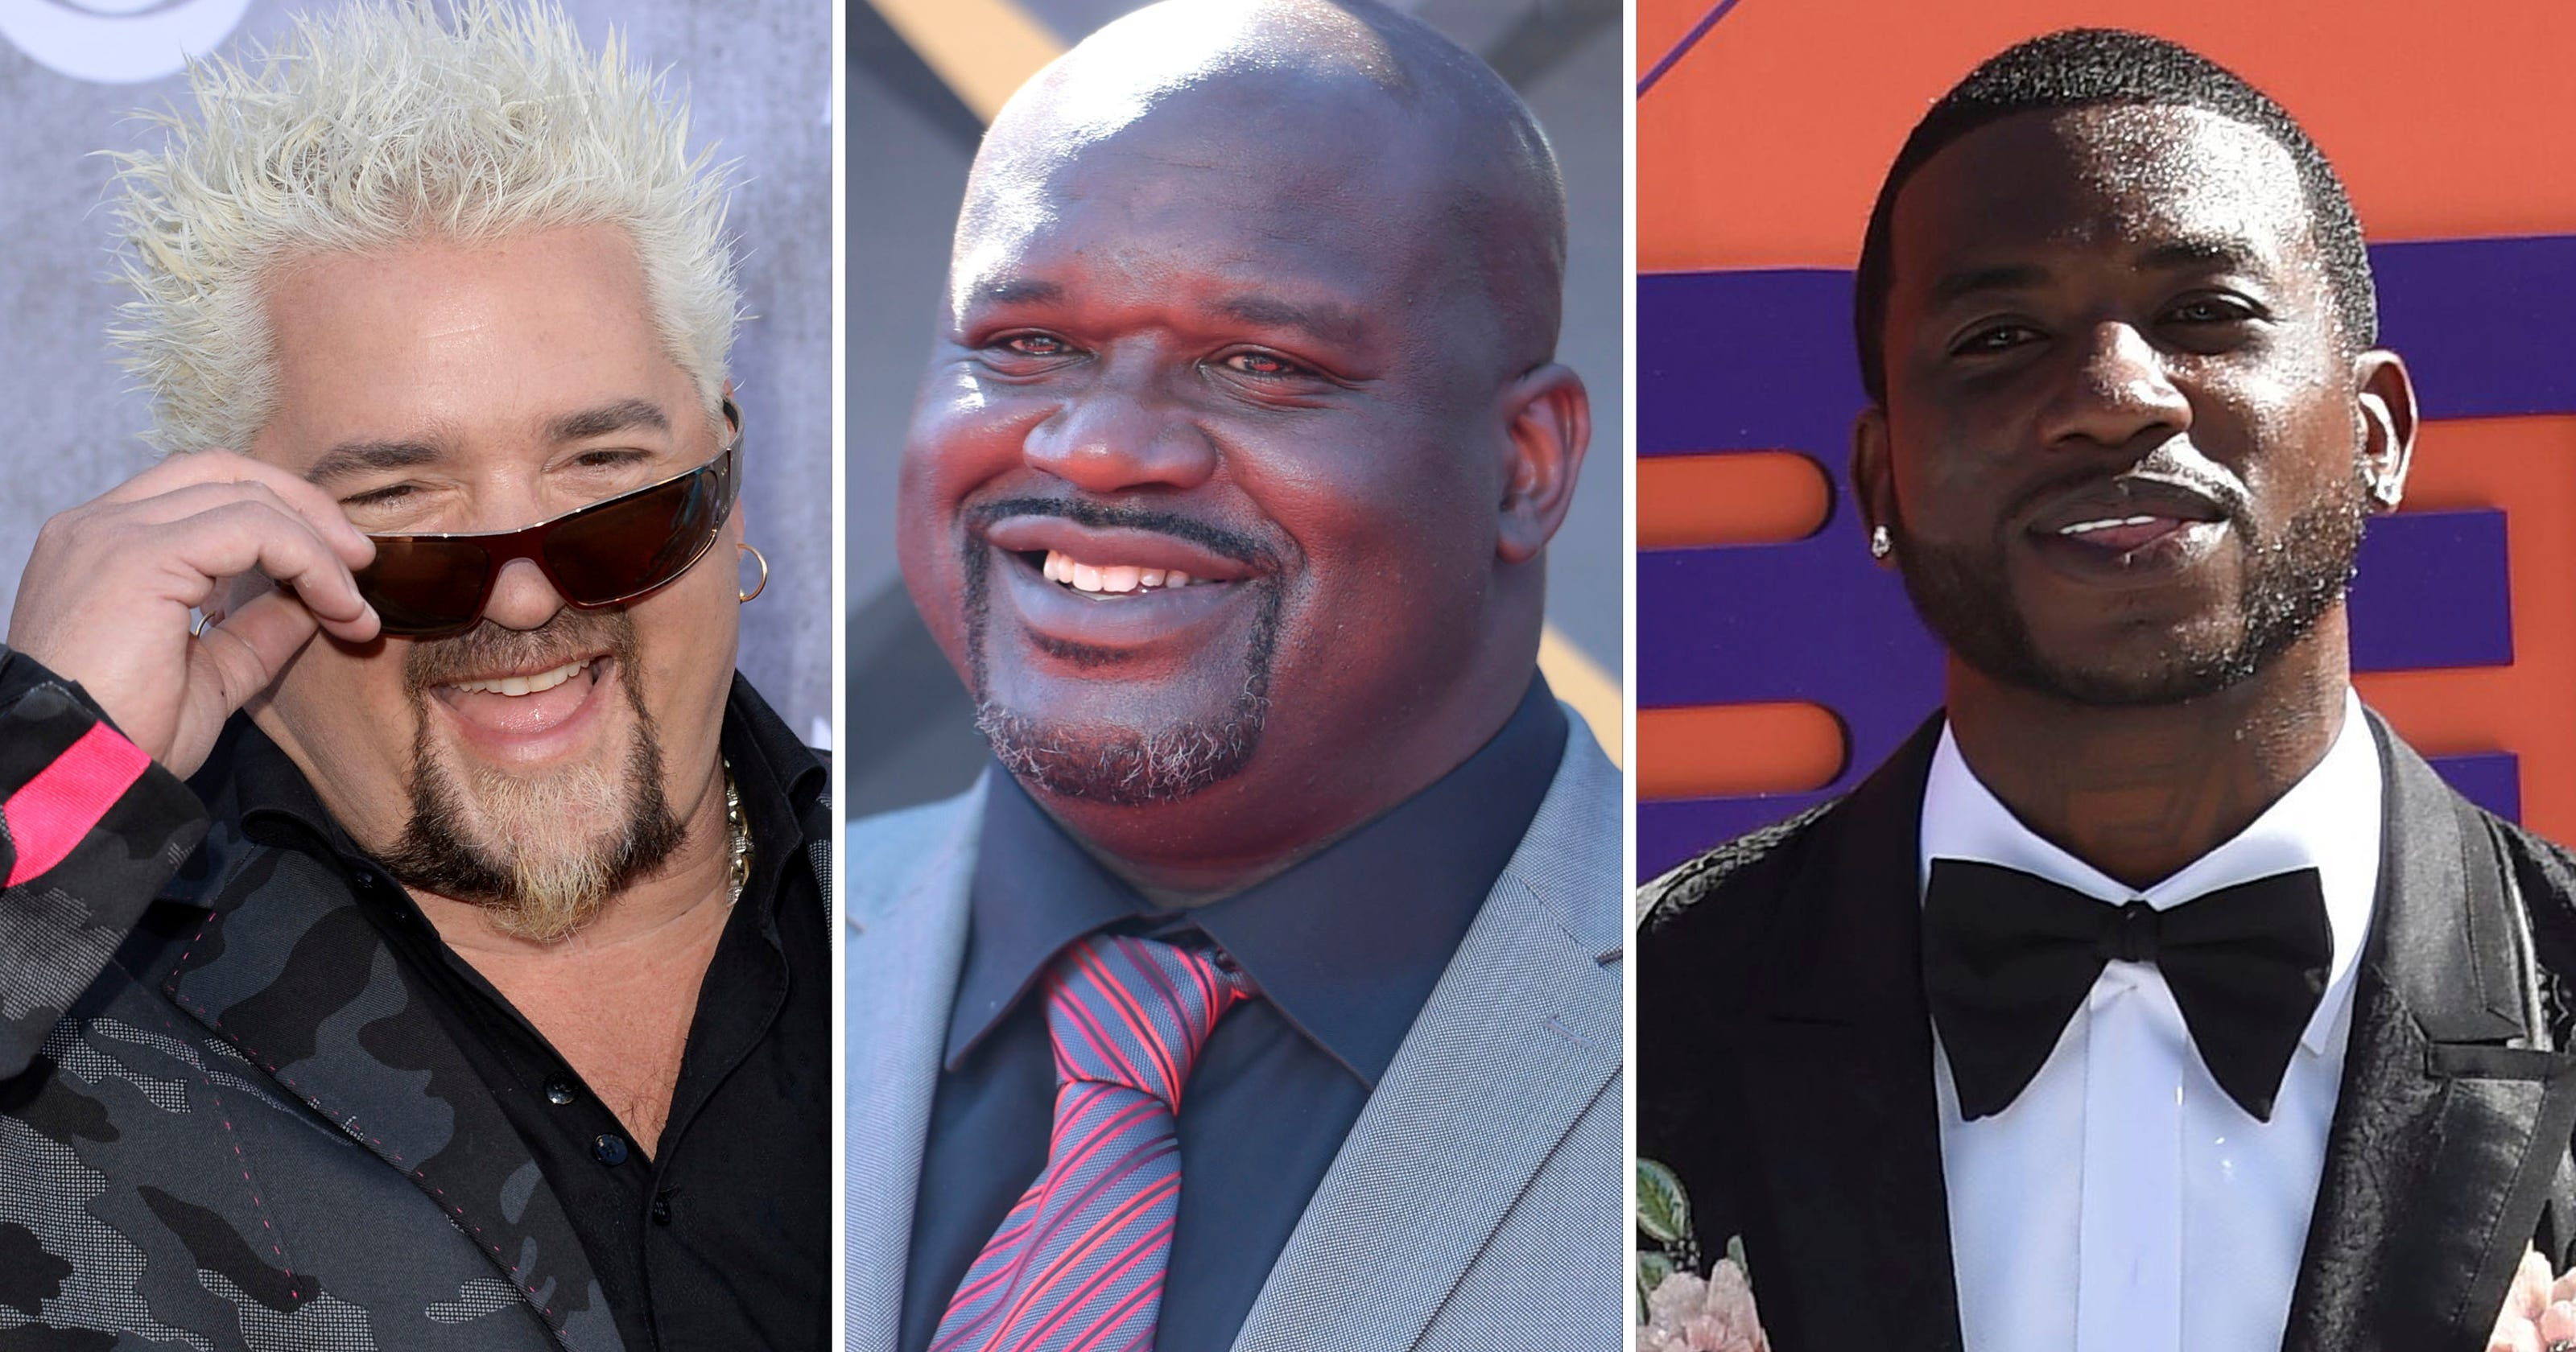 Shaq, Gucci Mane, Guy Fieri, Jamie Foxx partied at Miami club